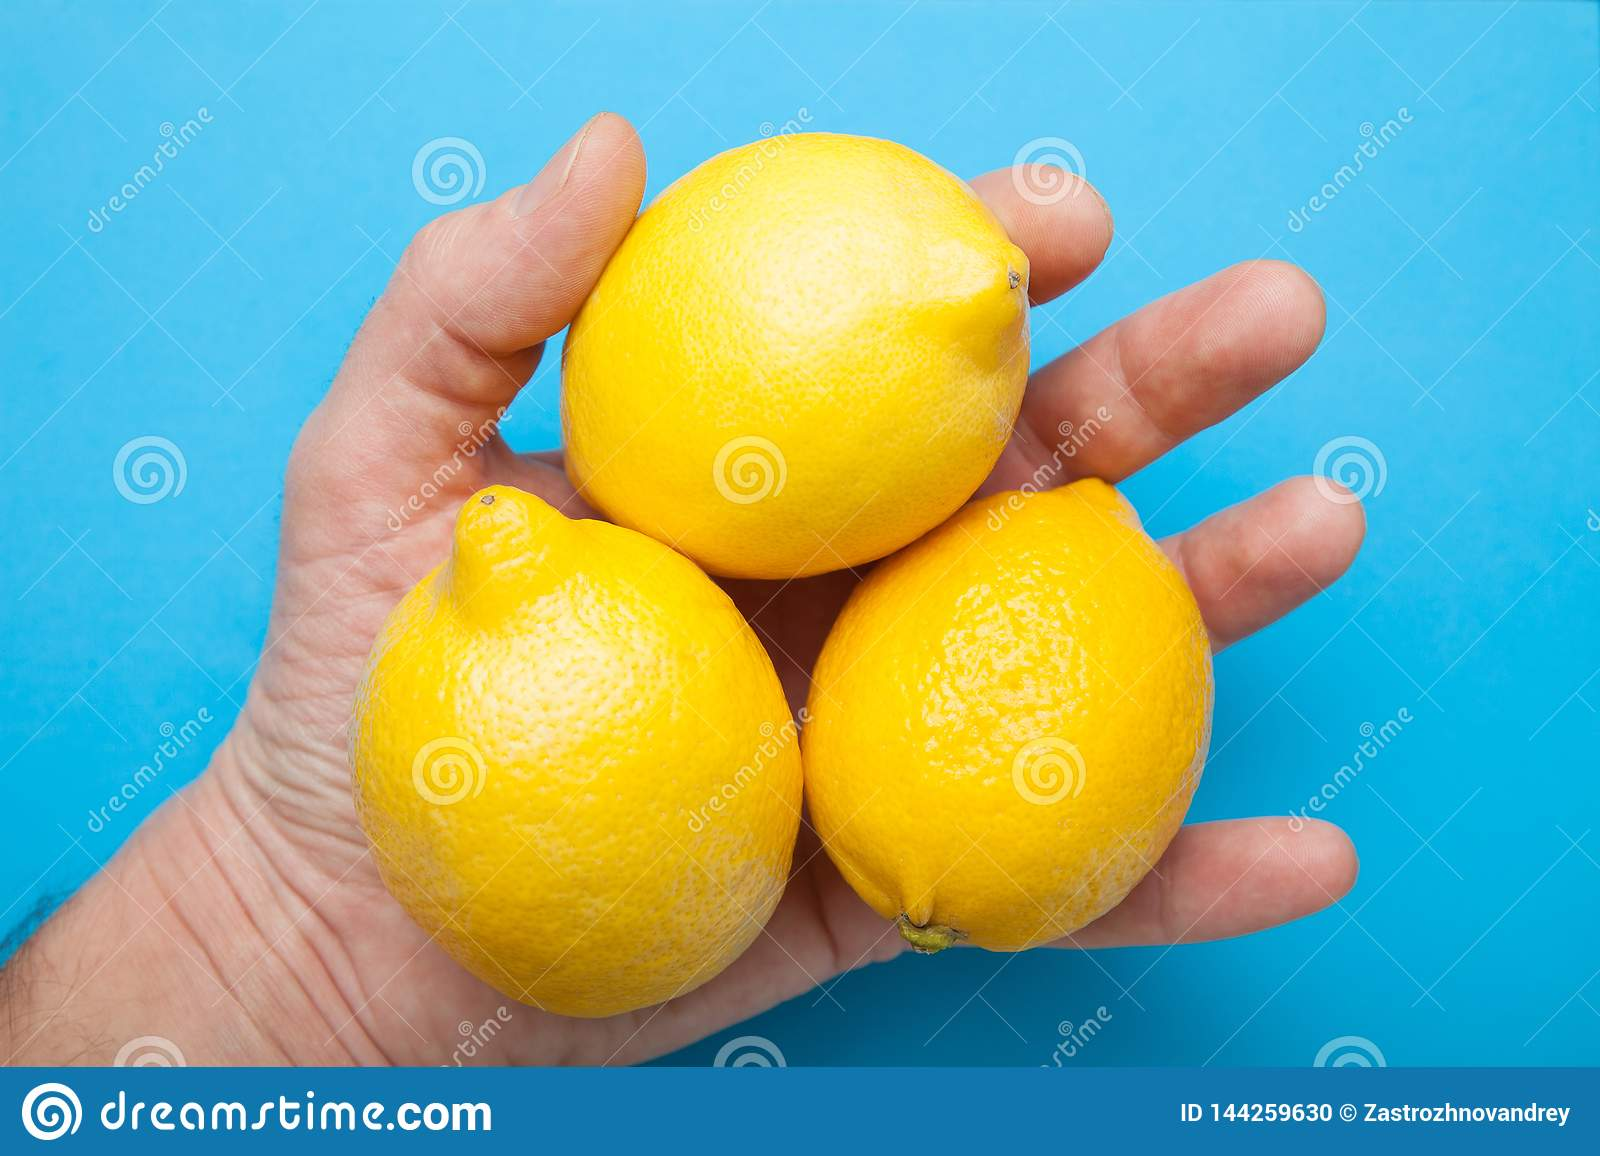 Three large lemons in the hand are isolated on a blue background